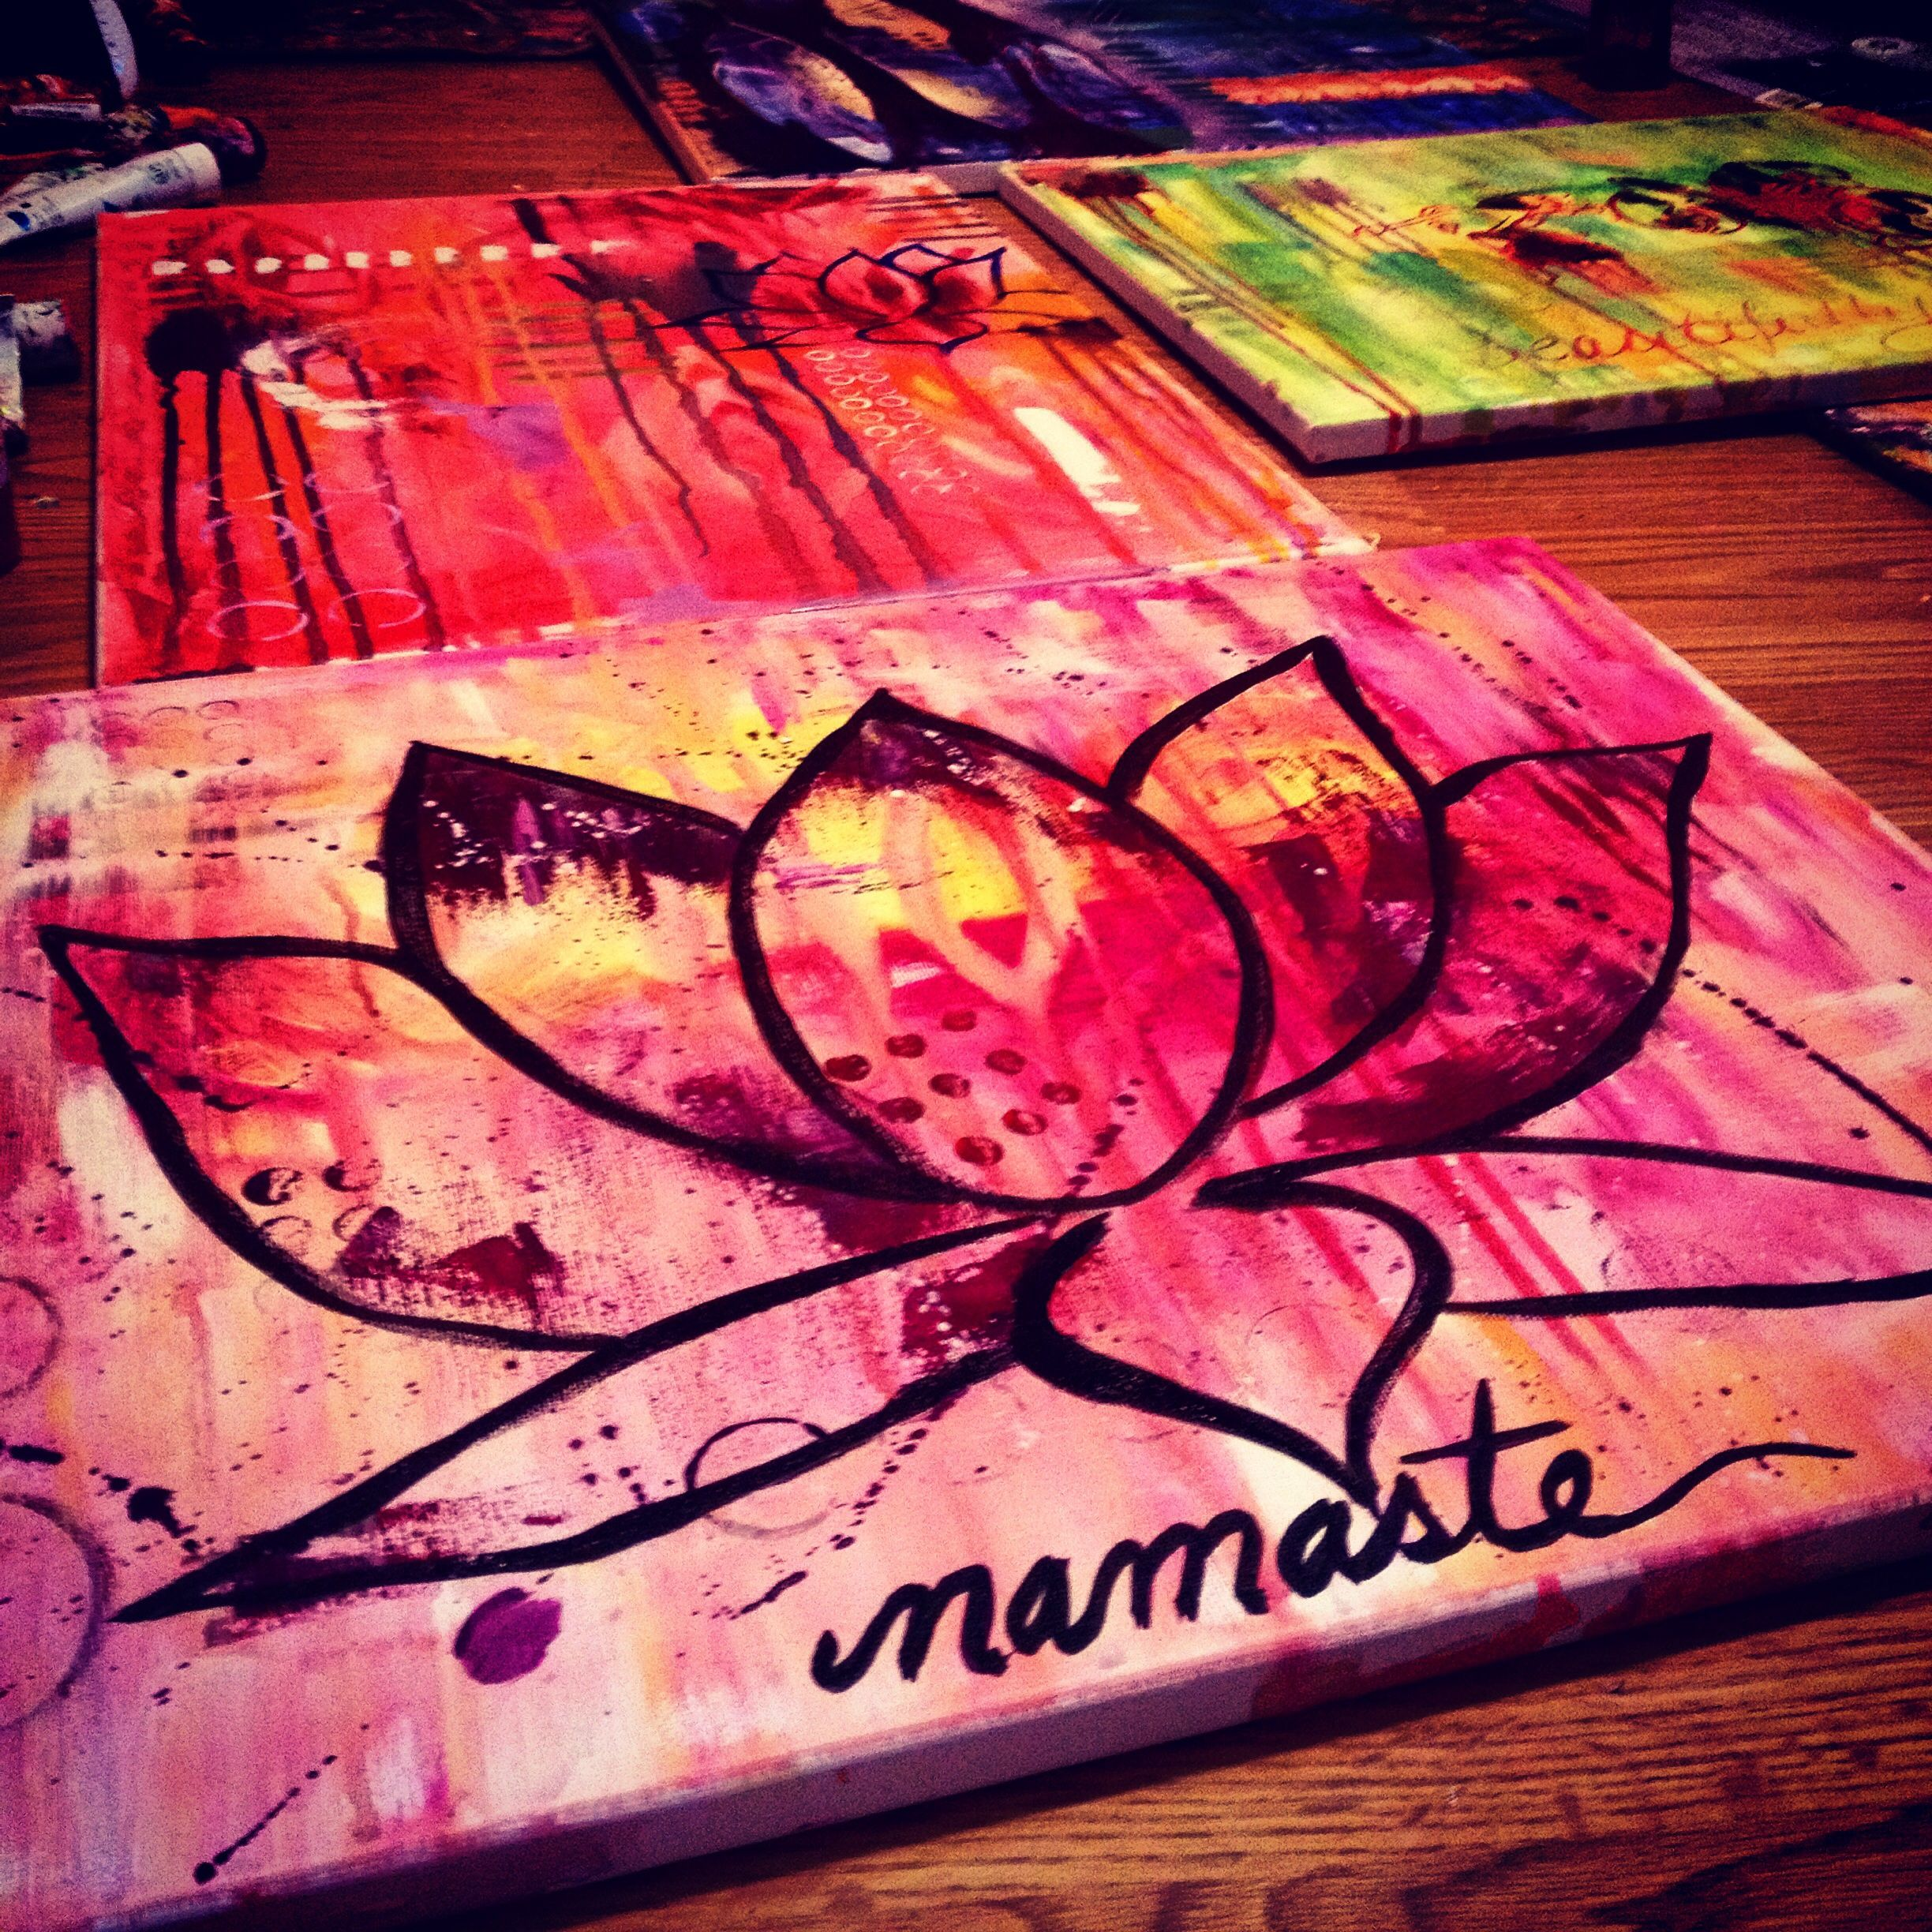 Namaste yoga lotus flower art abstract painting www etsy com shop kaylamallenart